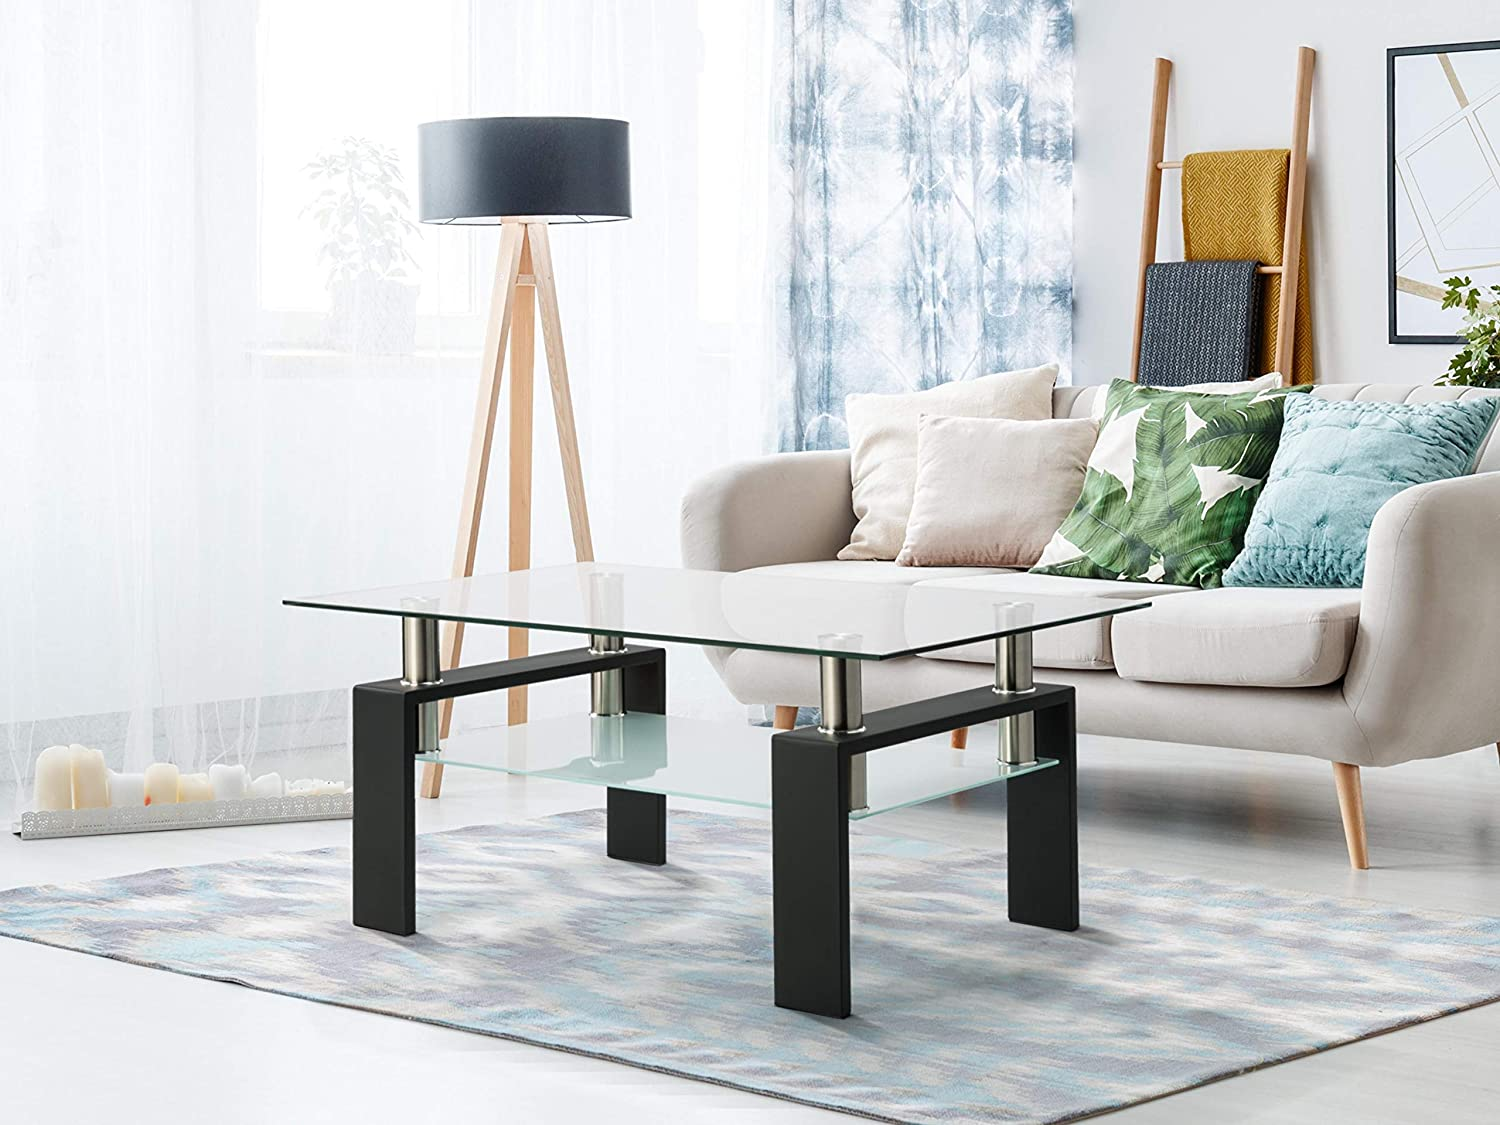 Goujxcy Rectangle Glass Coffee Table, Modern Living Room Table Clear Coffee Table with Lower Shelf Metal Legs, Cocktail Coffee Table Tea Rable Center Tables for Living Room Furniture